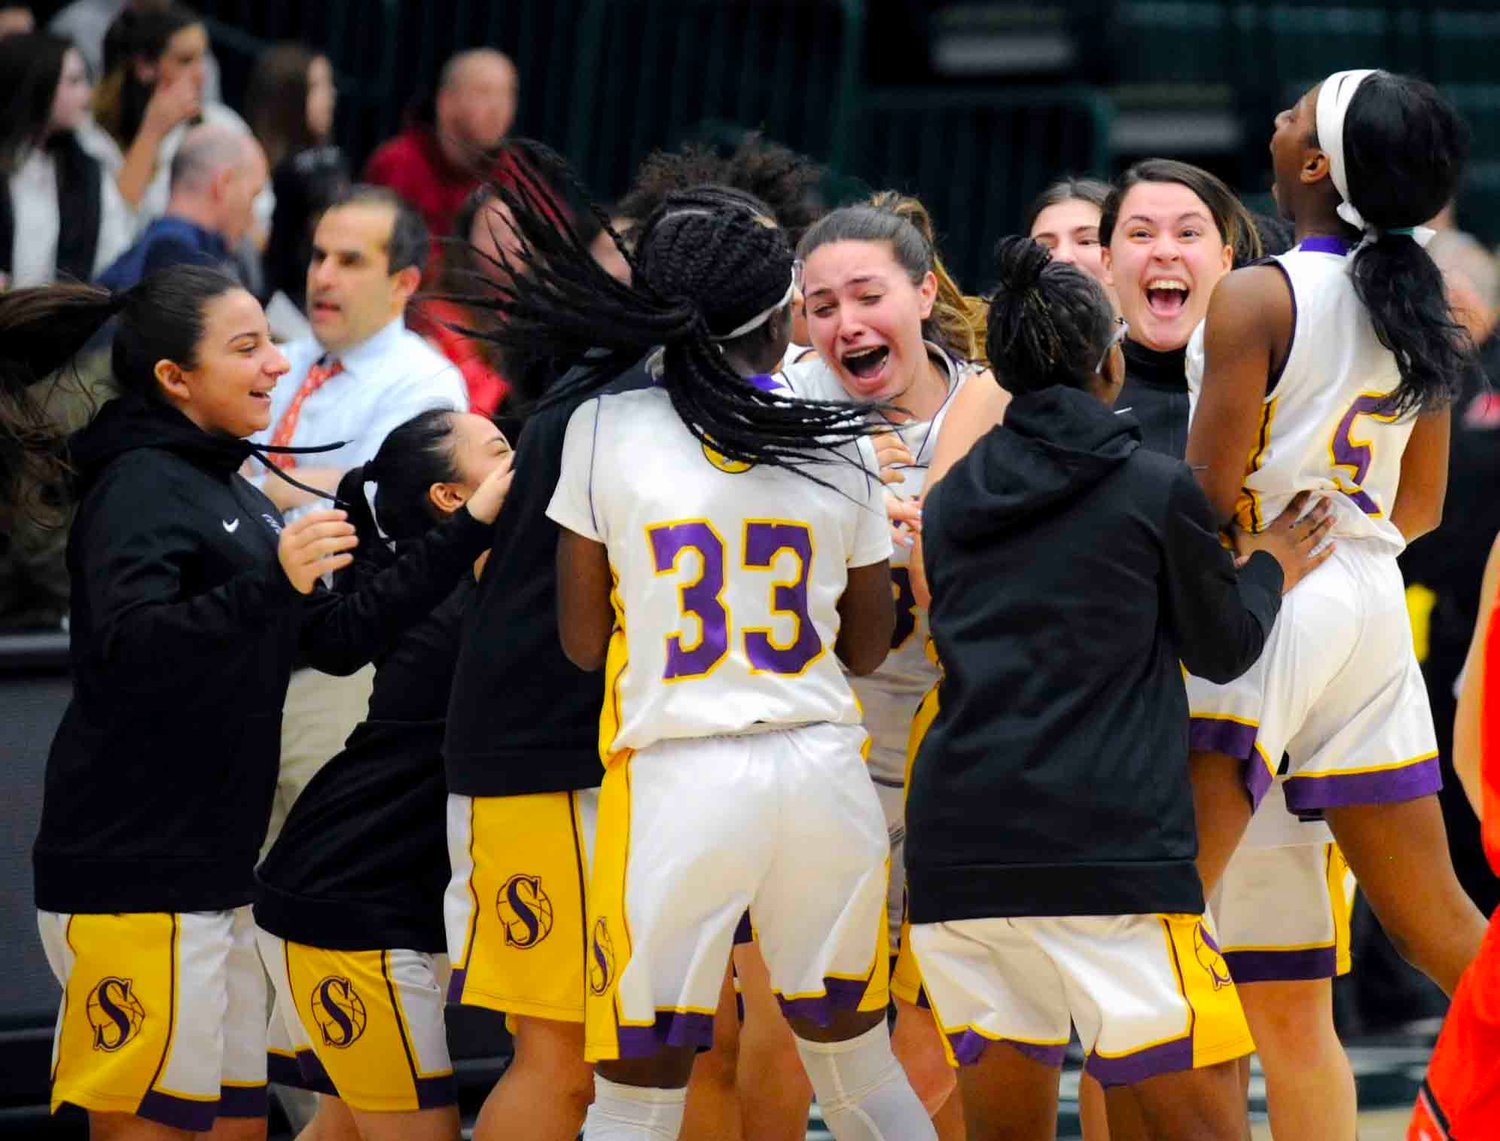 The Lady Indians won their first-ever Long Island title on Saturday.